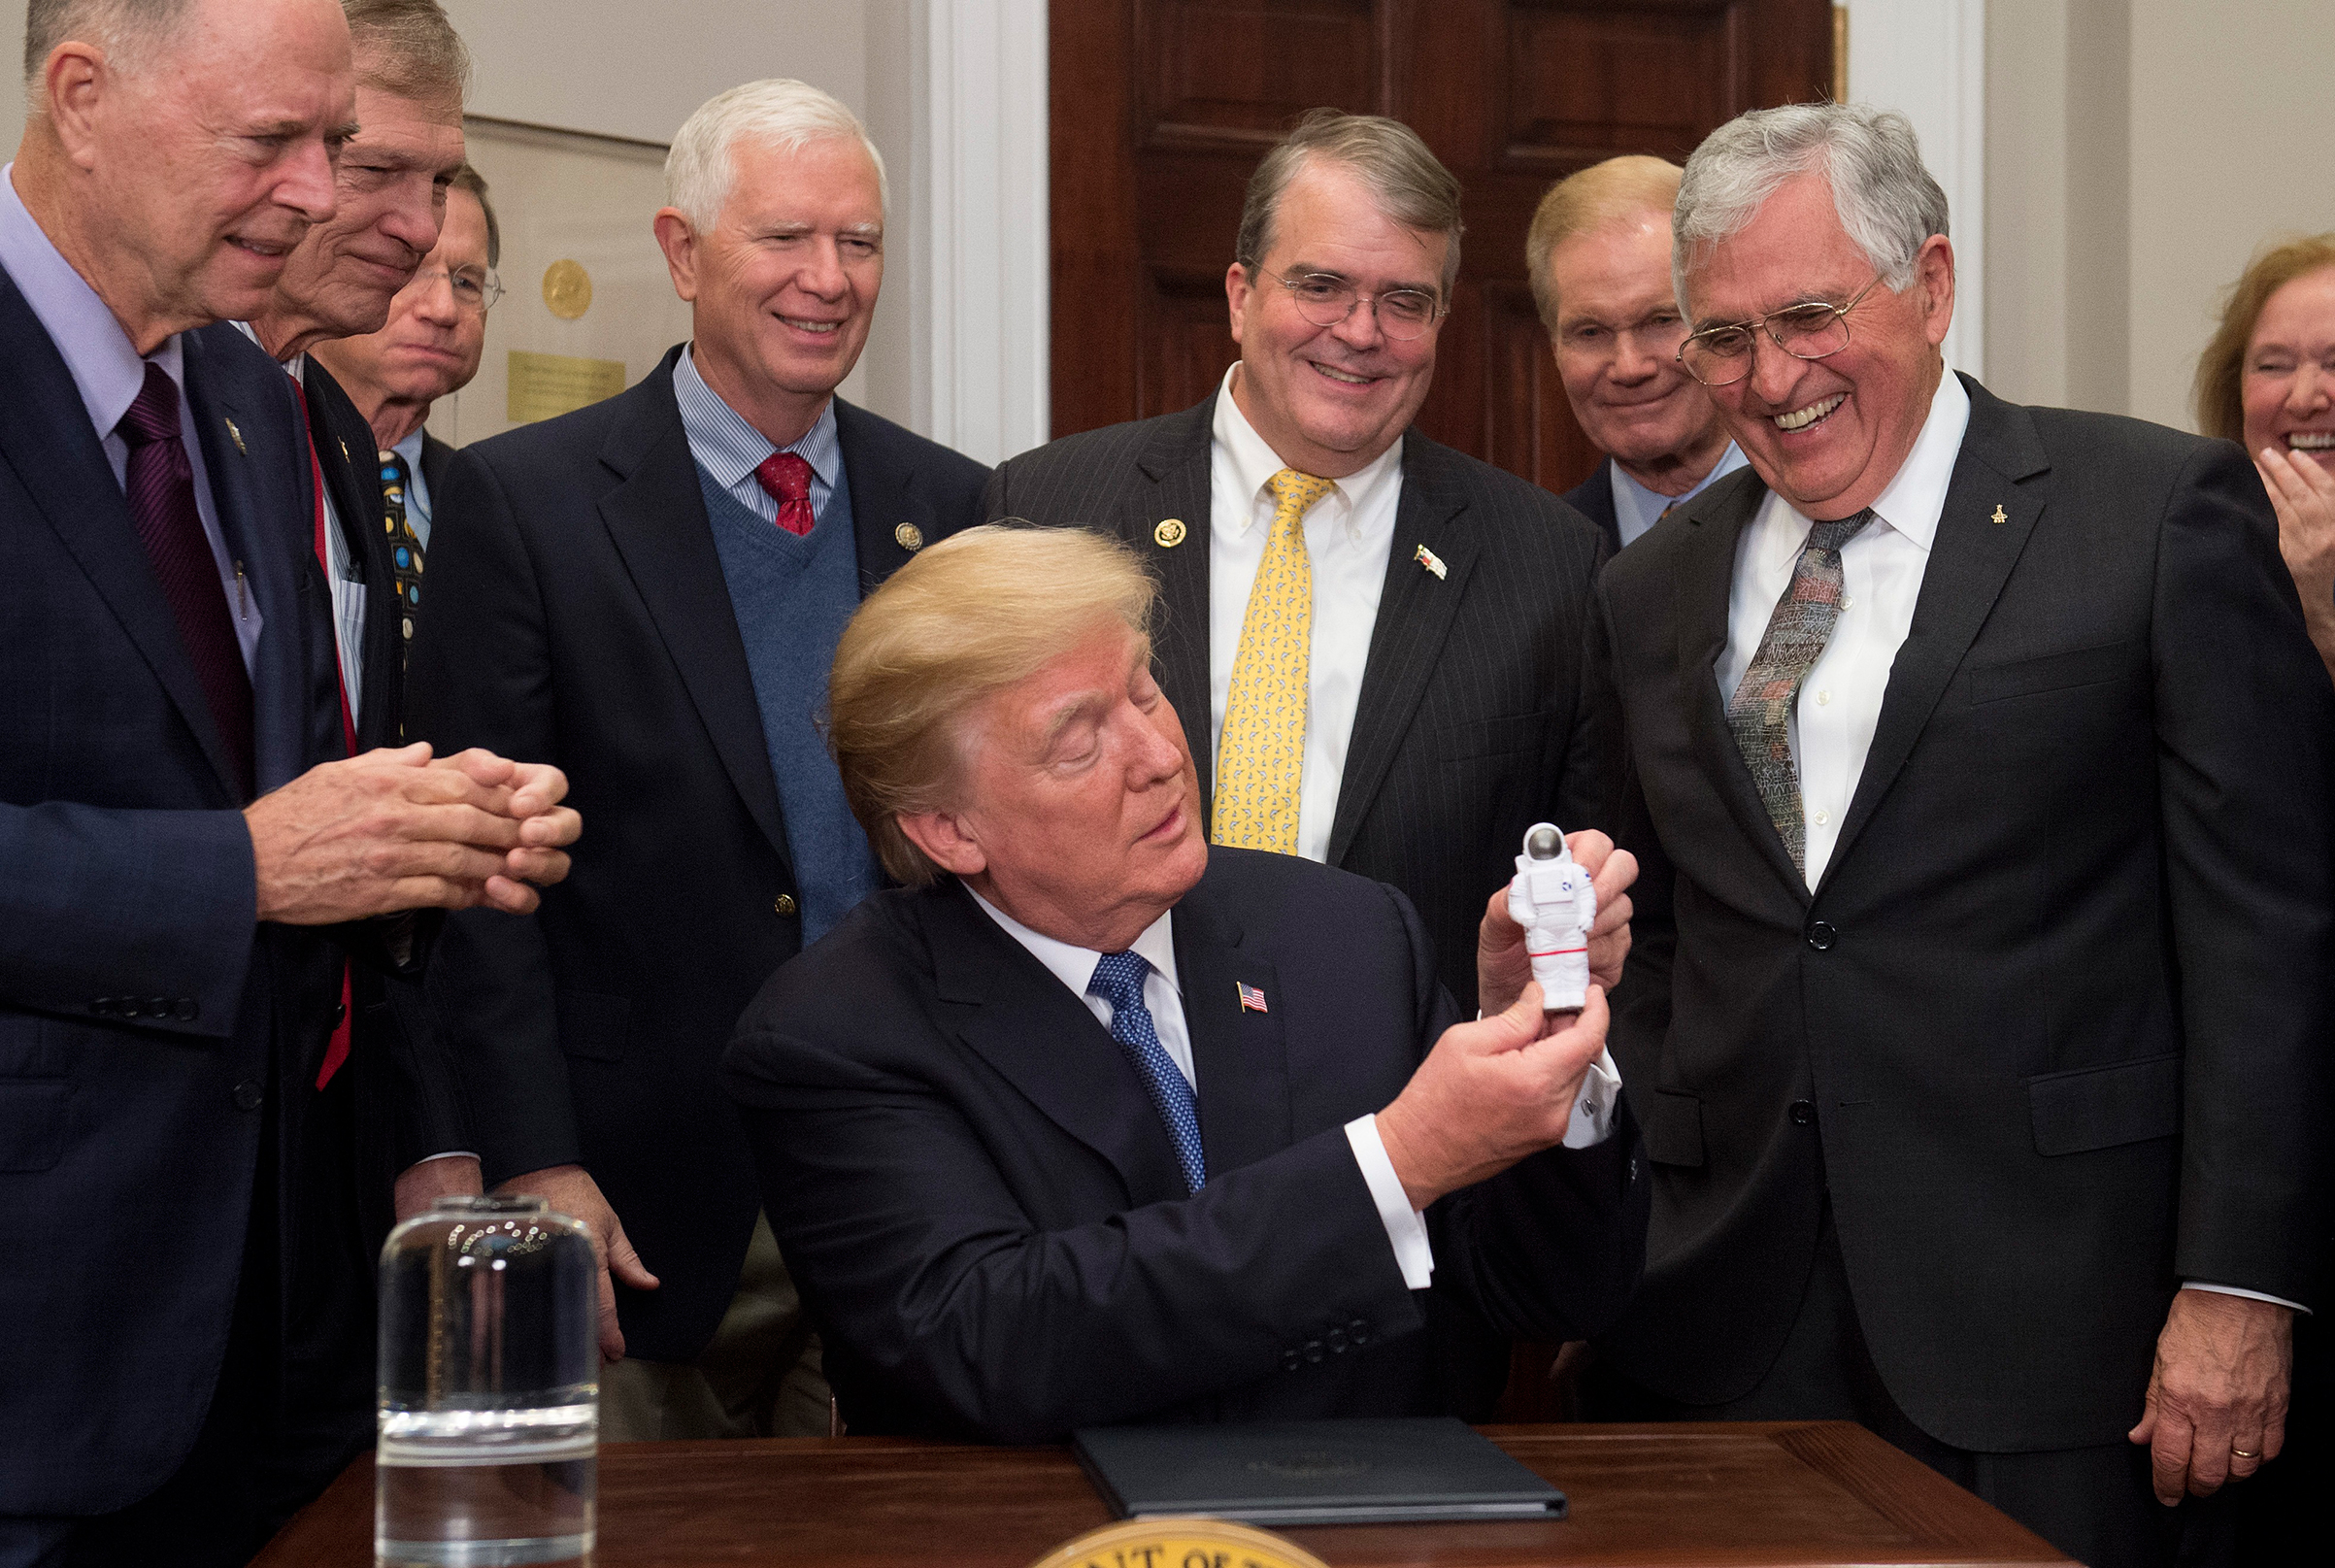 President Trump during the signing of his first space directive, with moonwalker and former Senator Harrison Schmitt, at right